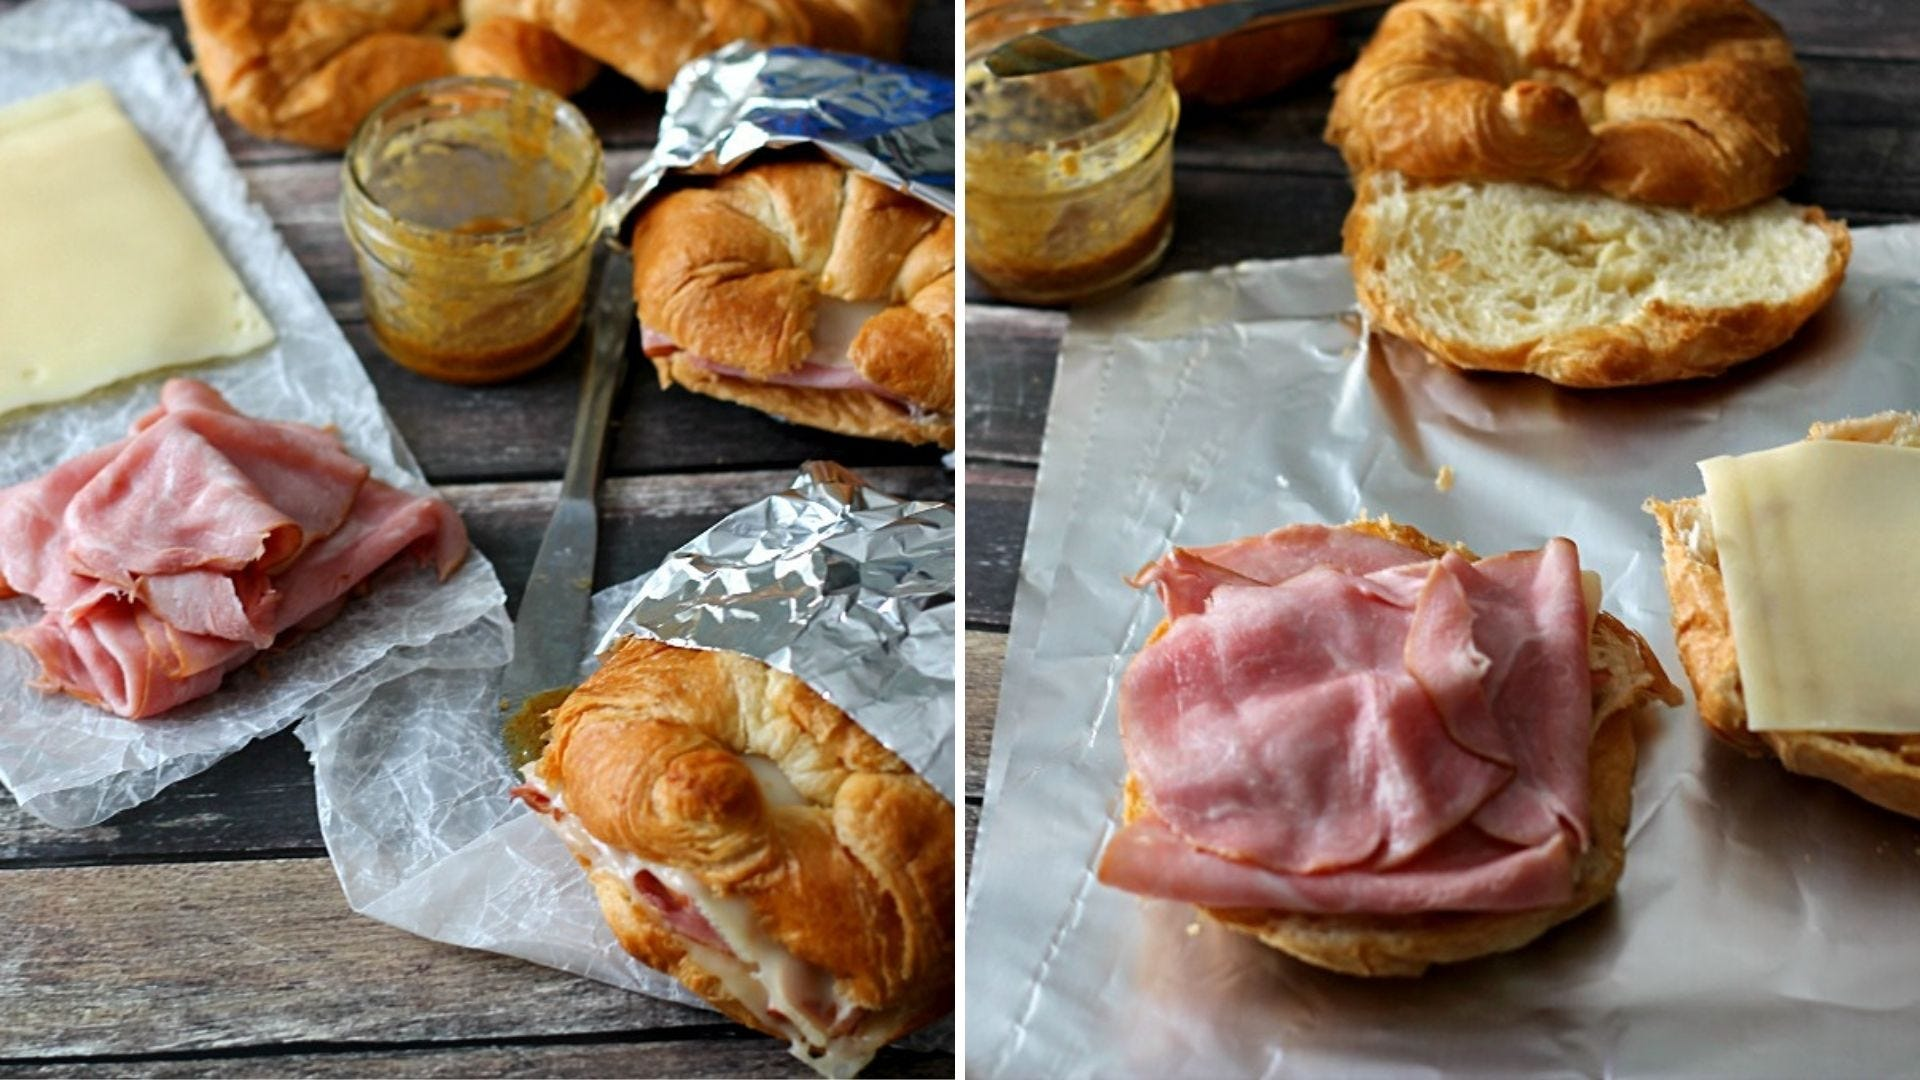 Croissant sandwiches with ham and Swiss cheese